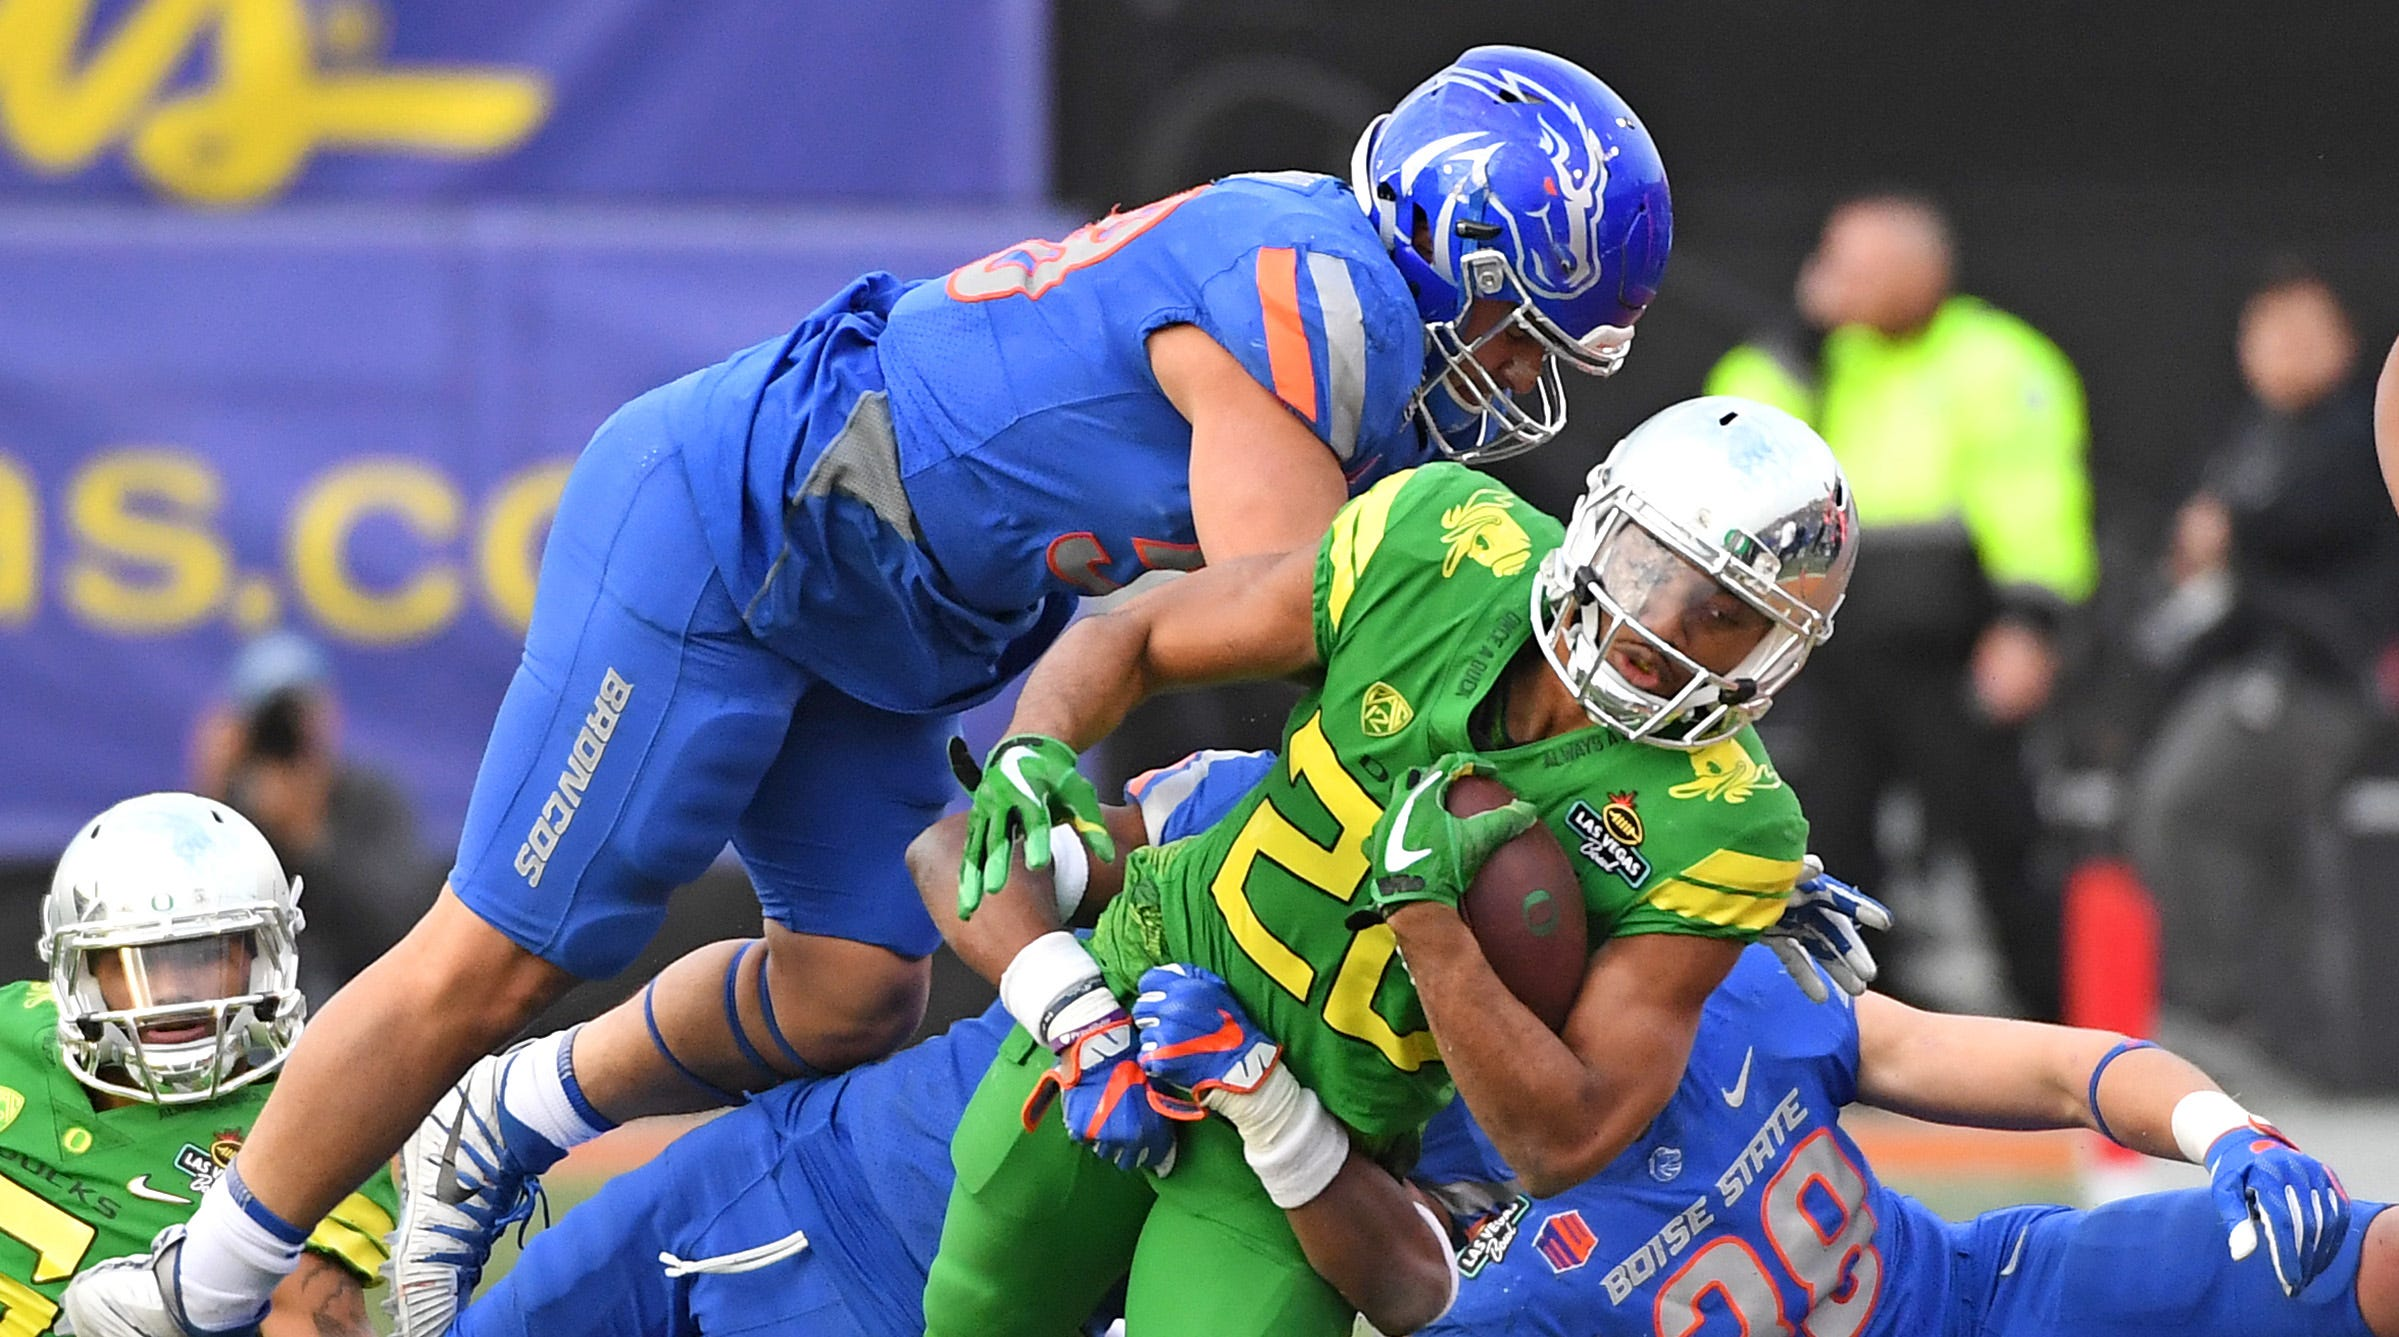 Dec 16, 2017; Las Vegas, NV, USA; Oregon running back Tony Brooks-James (20) is knocked out of bounds by Boise State linebacker Tyson Maeva (58) during the second half of the 2017 Las Vegas Bowl at Sam Boyd Stadium. Boise State won 38-28.